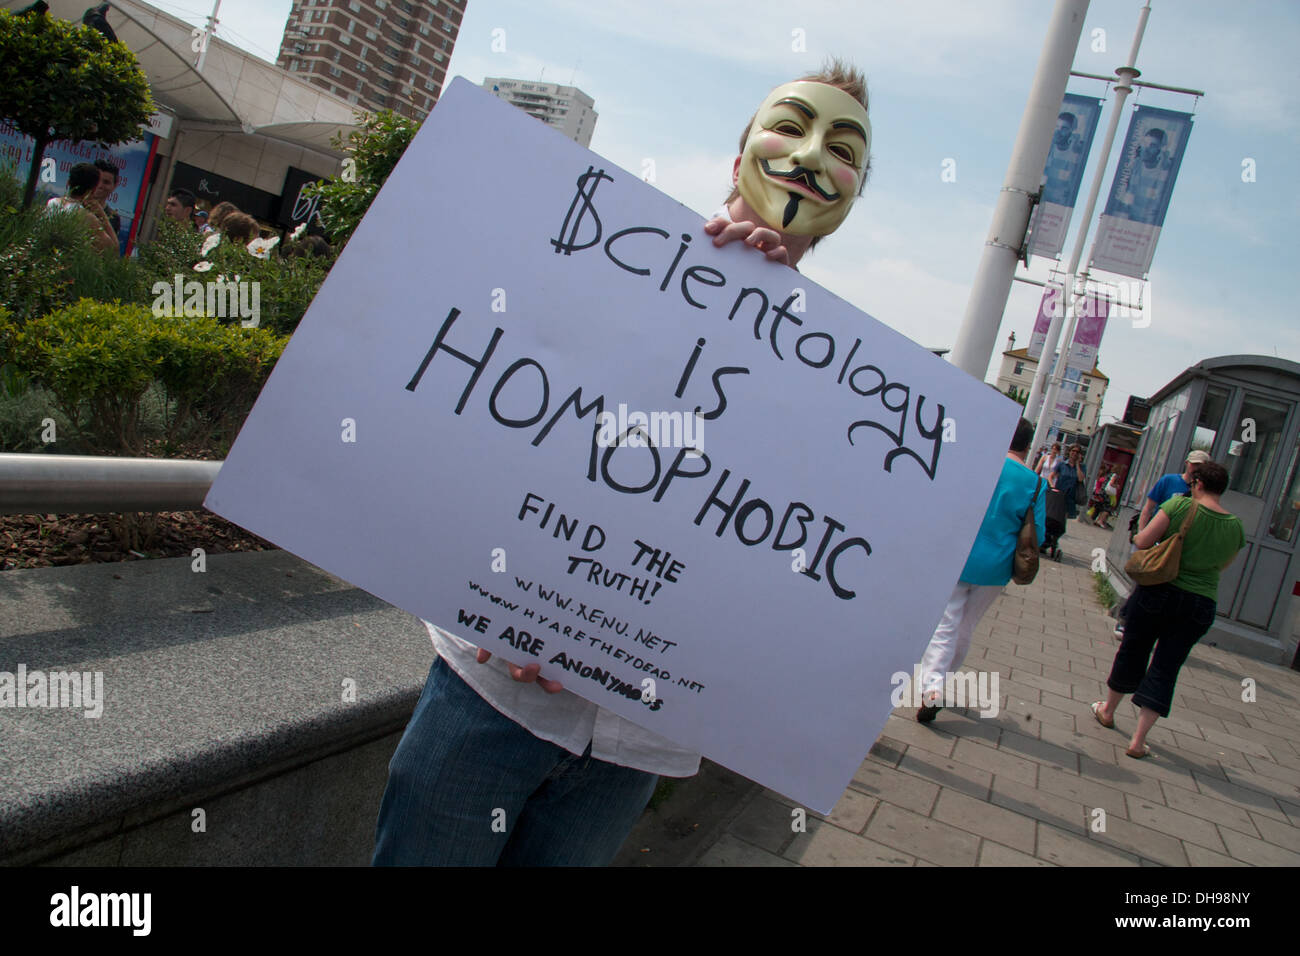 A protester wearing a Guy Fawkes V for Vendetta mask protests against Scientologists.  Scientology  is homophobic - Stock Image